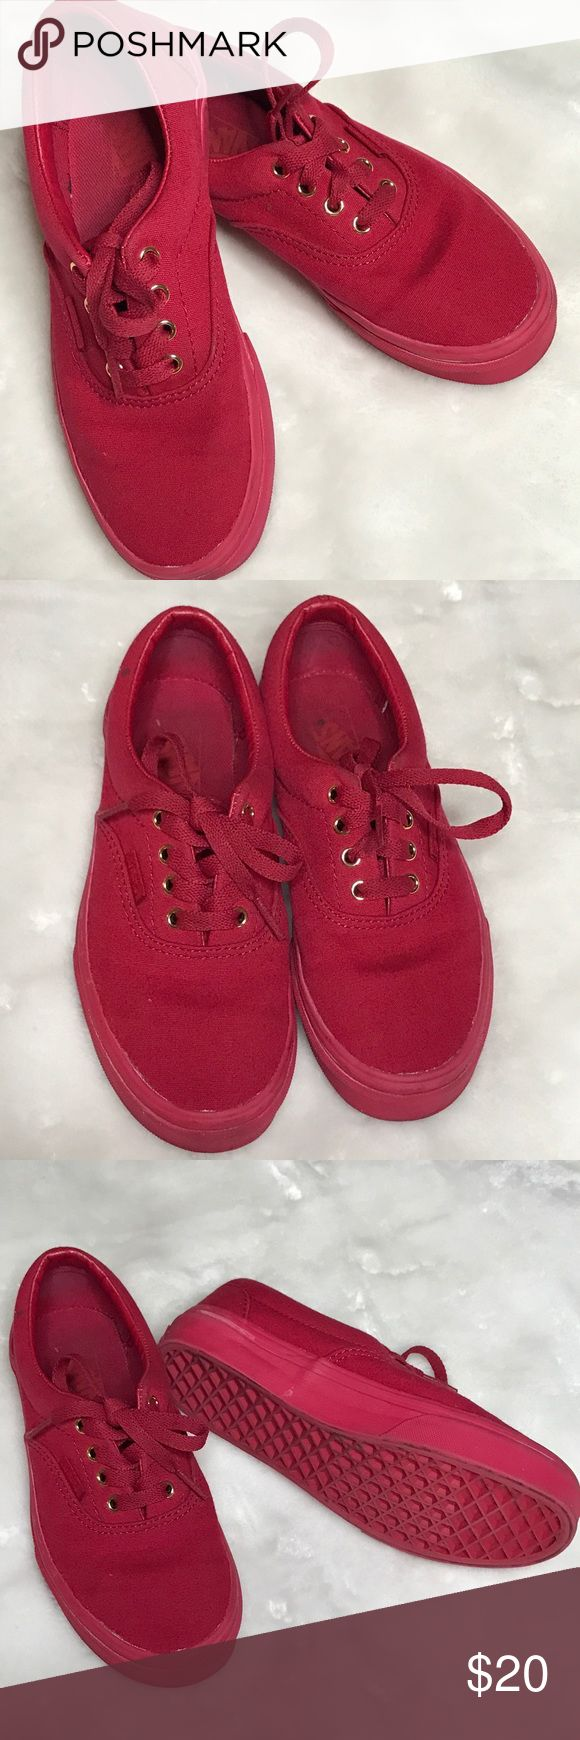 VANS KIDS RED SNEAKERS MONO AUTHENTIC Size 3.5 - VANS KIDS RED SNEAKERS MONO AUTHENTIC. Slightly used. EXCELLENT CONDITION Vans Shoes Sneakers